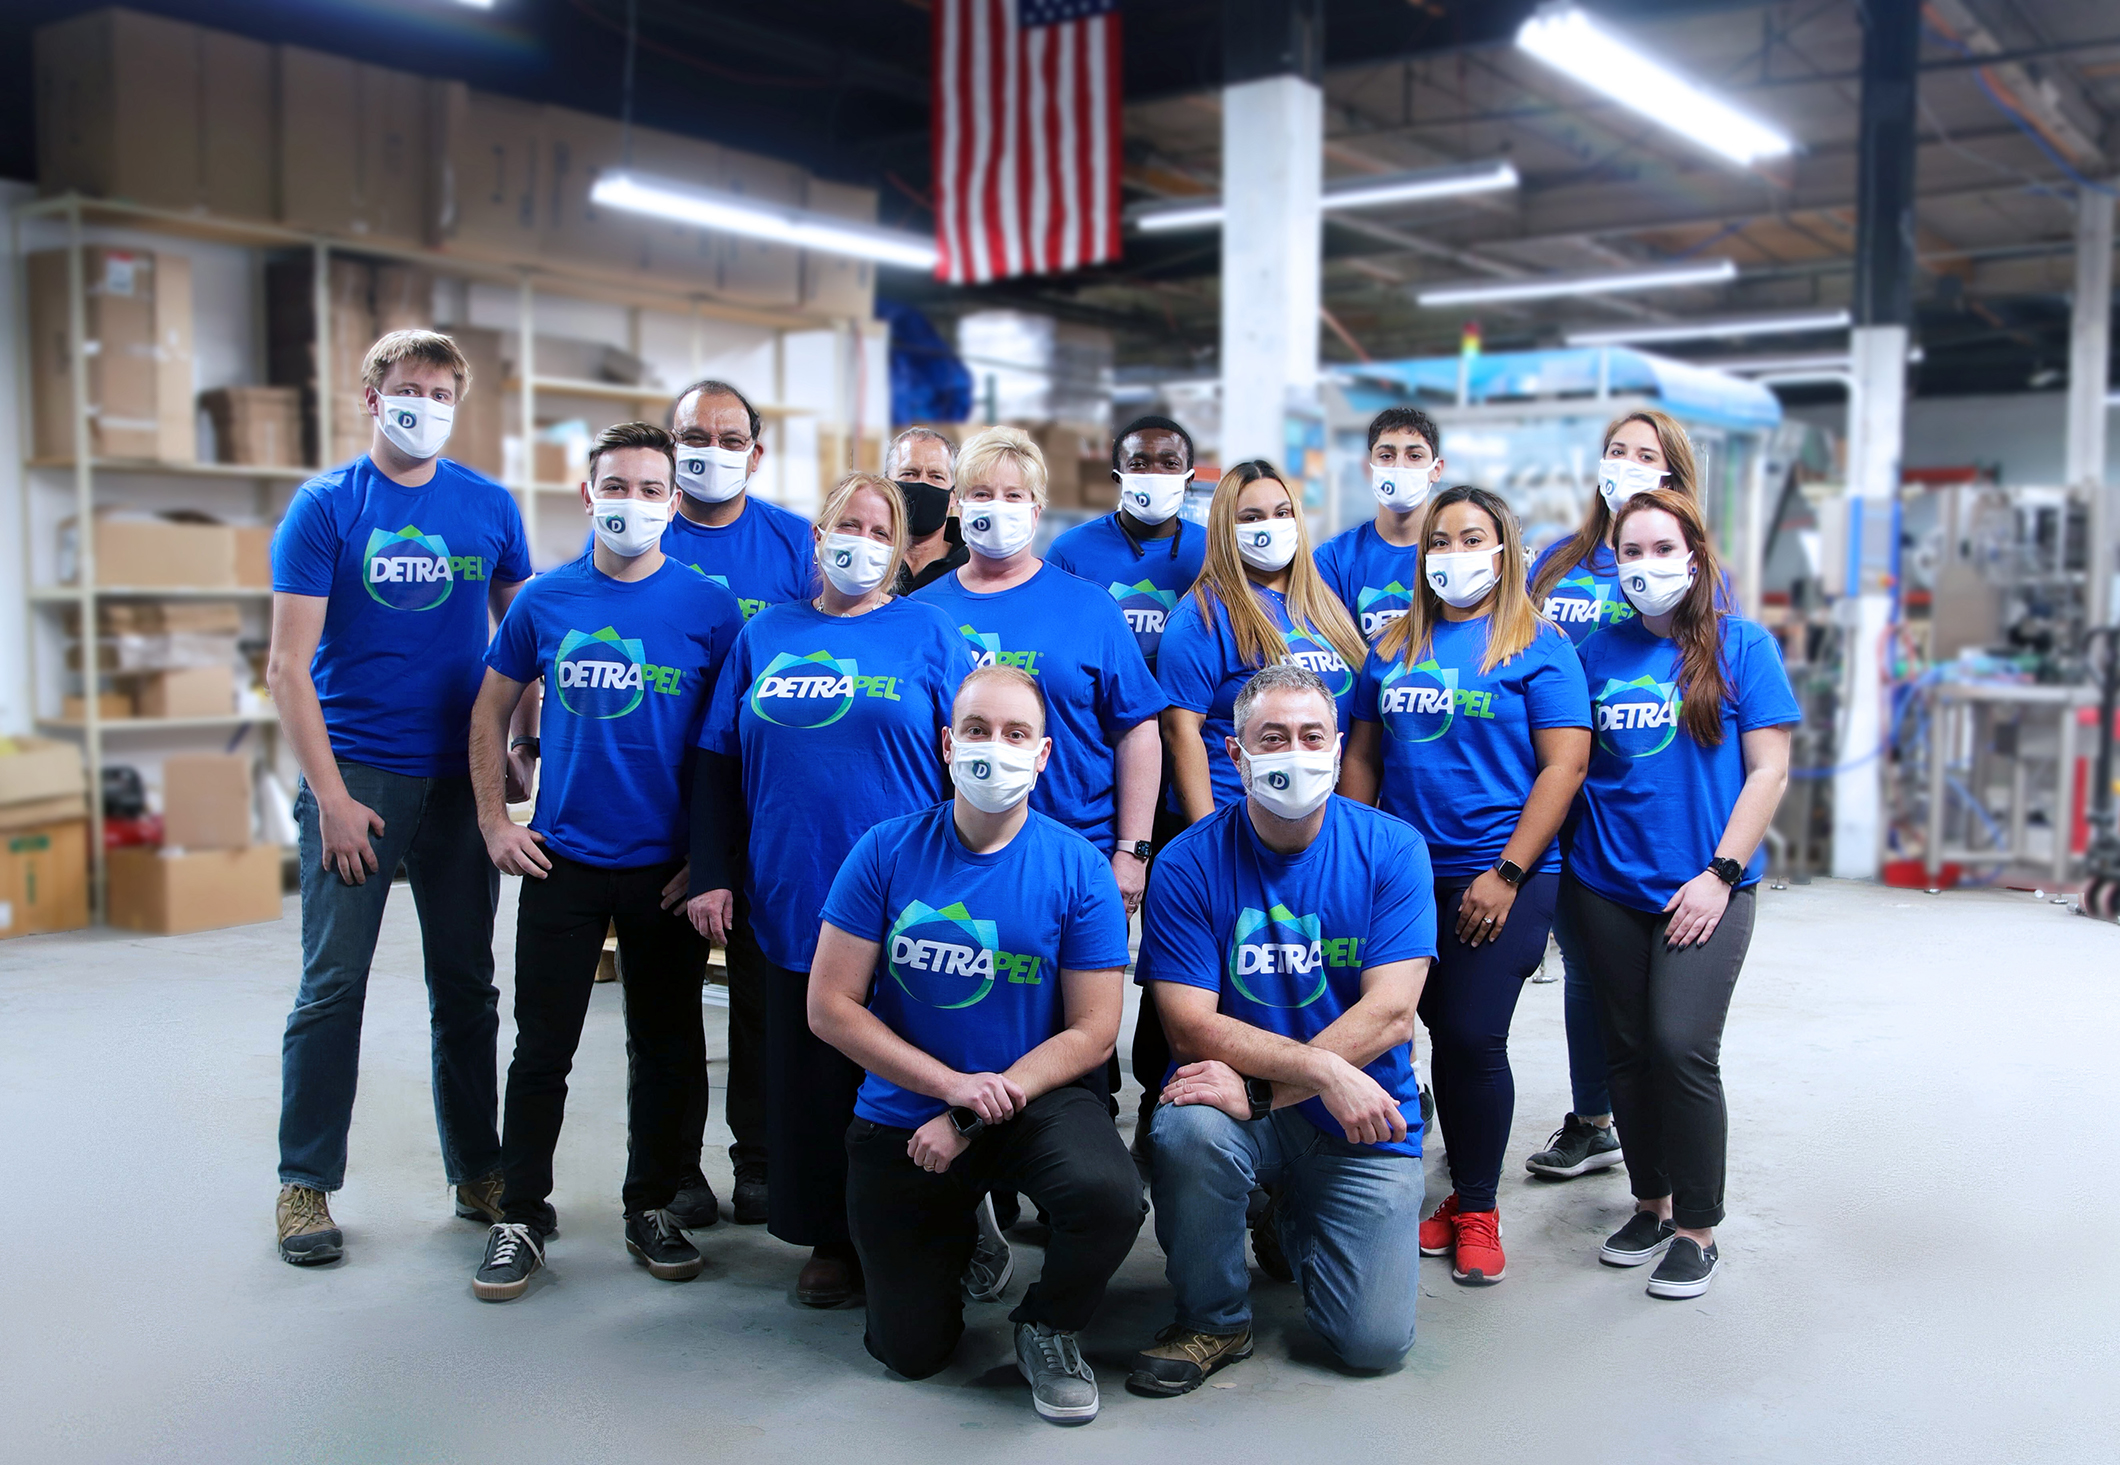 DetraPel's growing team, manufacturing all under one roof to provide quality assurance and reduce their carbon footprint.